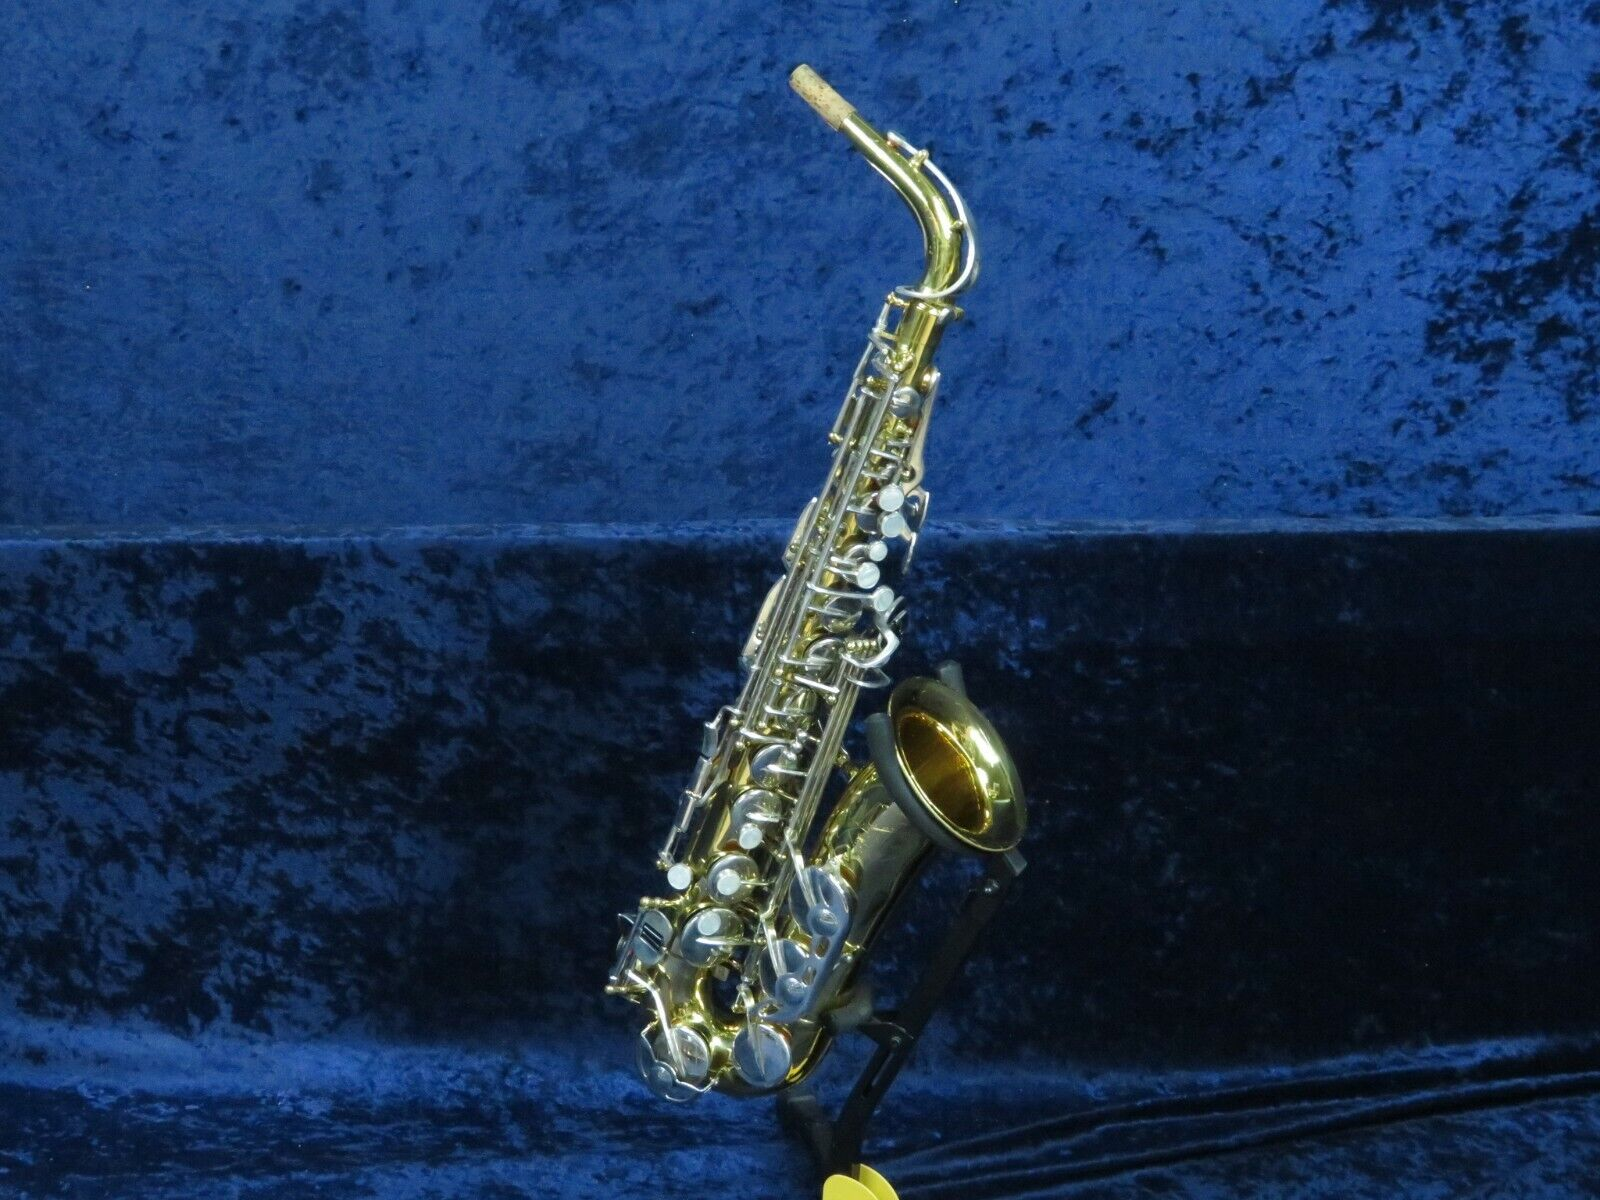 .King Empire 665 Alto Saxophon SerPlays Great and in Great Shape